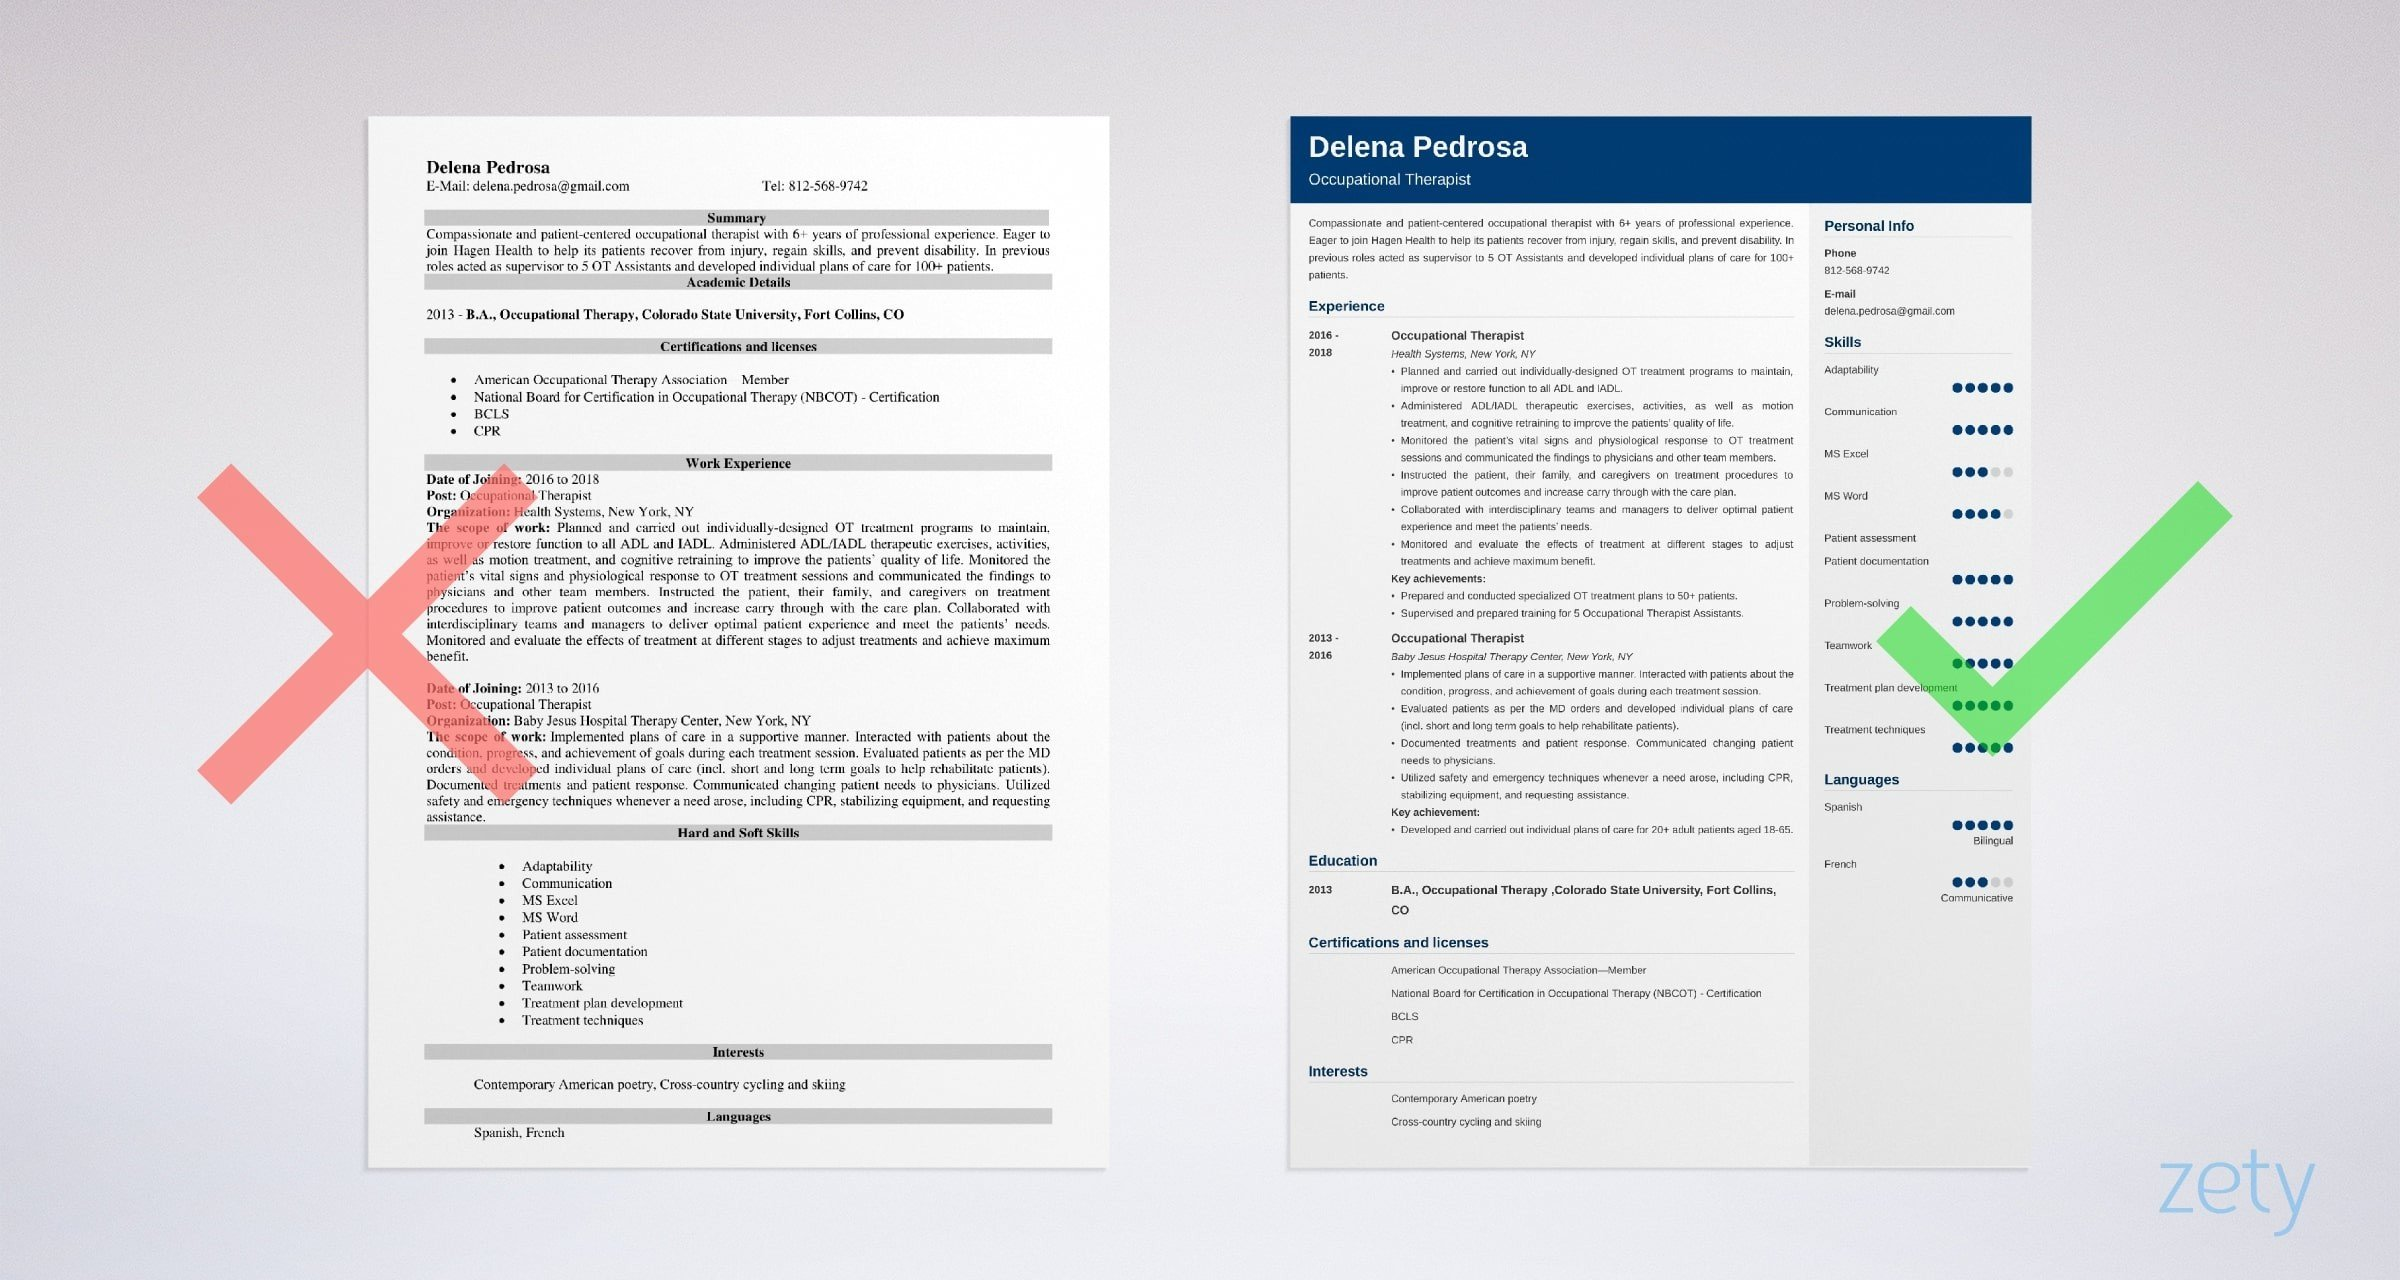 Occupational Therapy Resume: Sample & Writing Guide [20+ Tips]